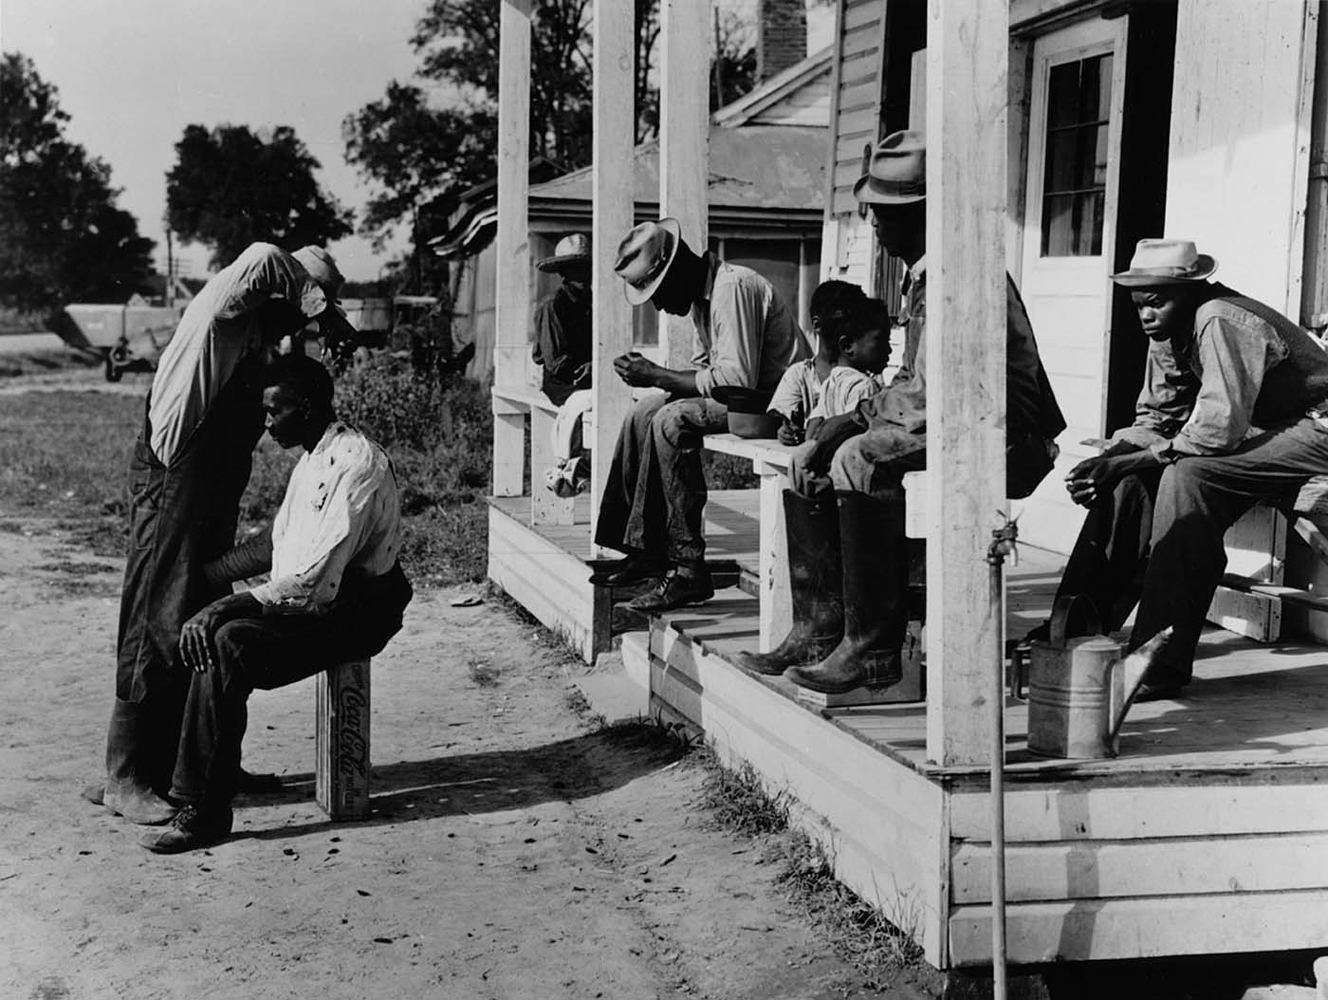 Marion Post Wolcott, Haircutting in front of general store, Marcella Plantation, Mileston, Mississippi, 1939 gelatin silver print, 11 x 14 inches, signed by artist, $3000.